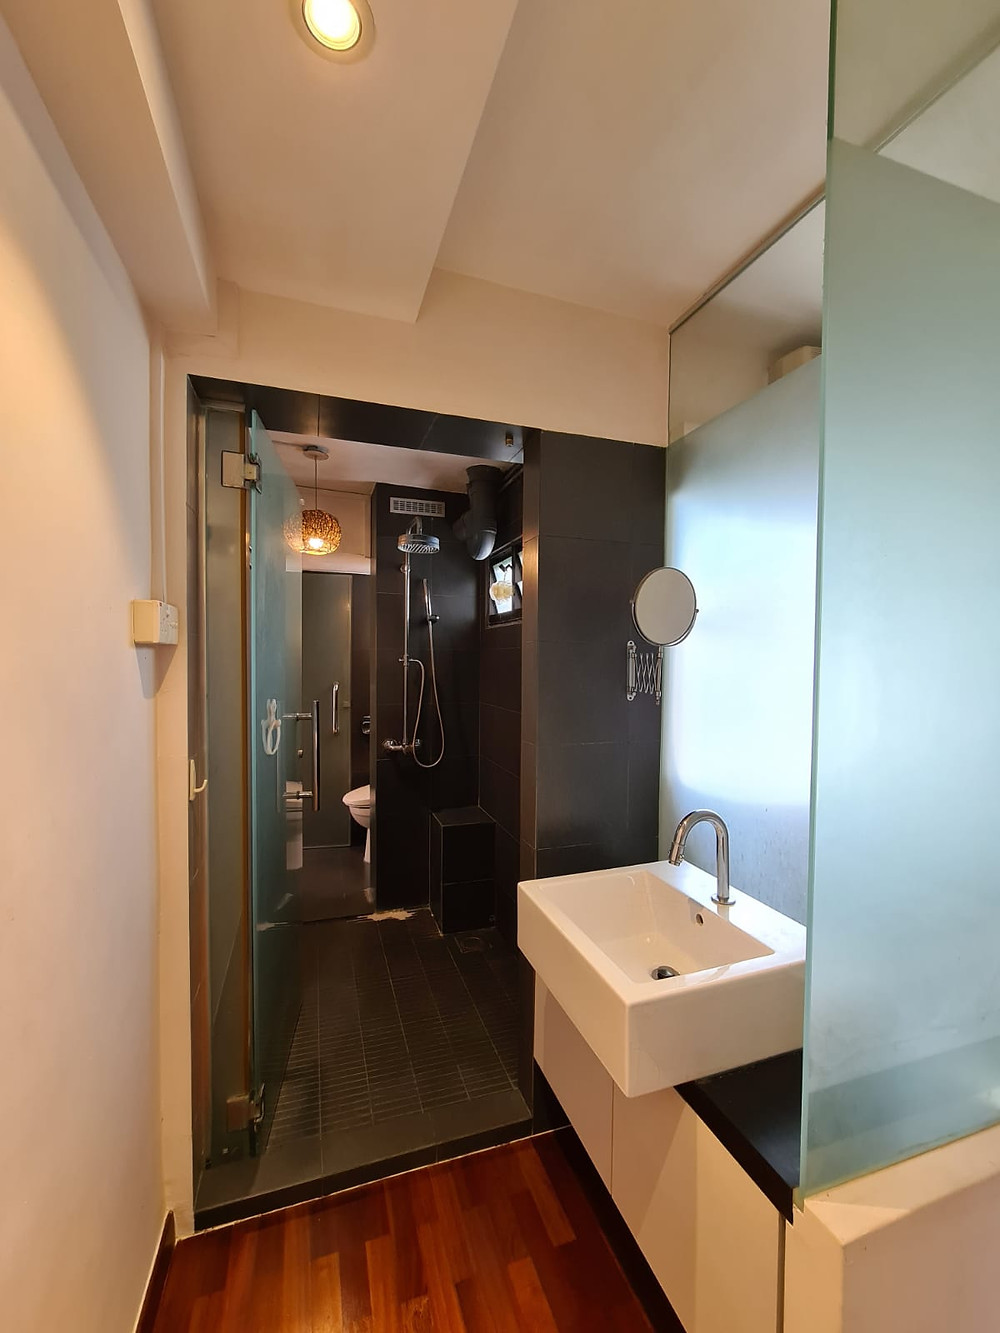 attached bathroom, improved unit, 3I, buy marine parade hdb flat